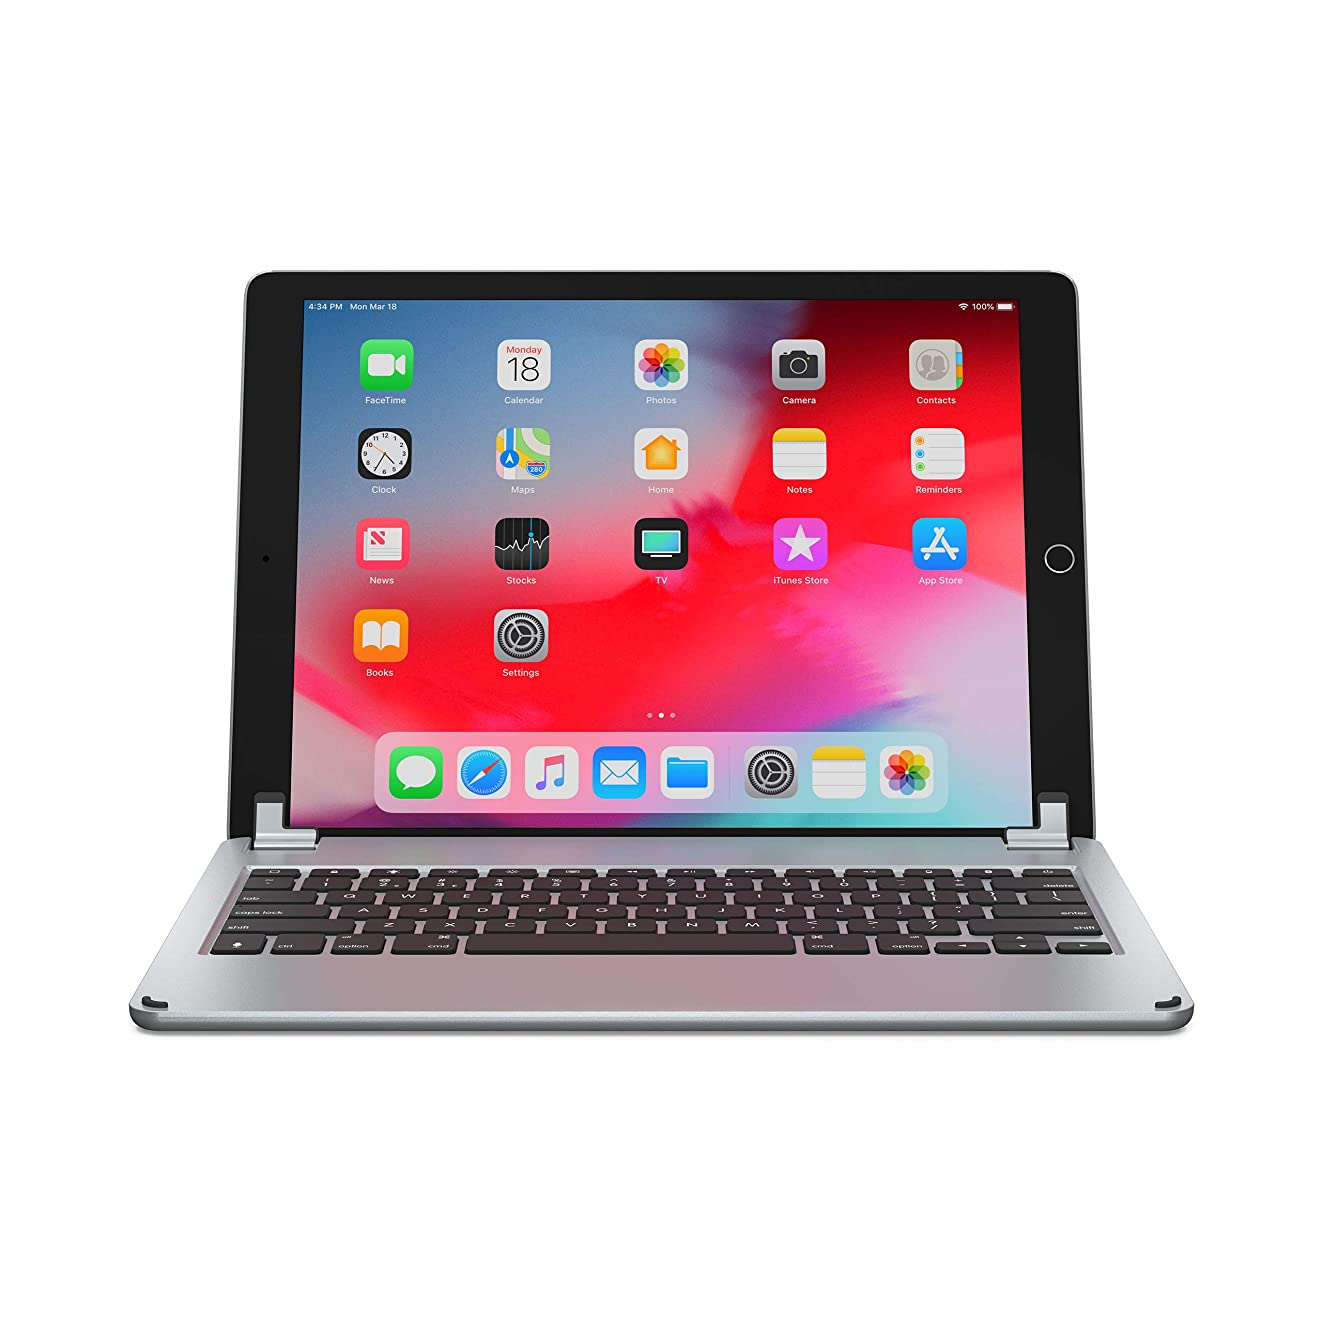 Brydge 12.9 Keyboard for iPad Pro 12.9 inch | 2017/2015 Models only | Aluminum Bluetooth Wireless Keyboard with Backlit Keys | Long Battery Life | (Space Gray)